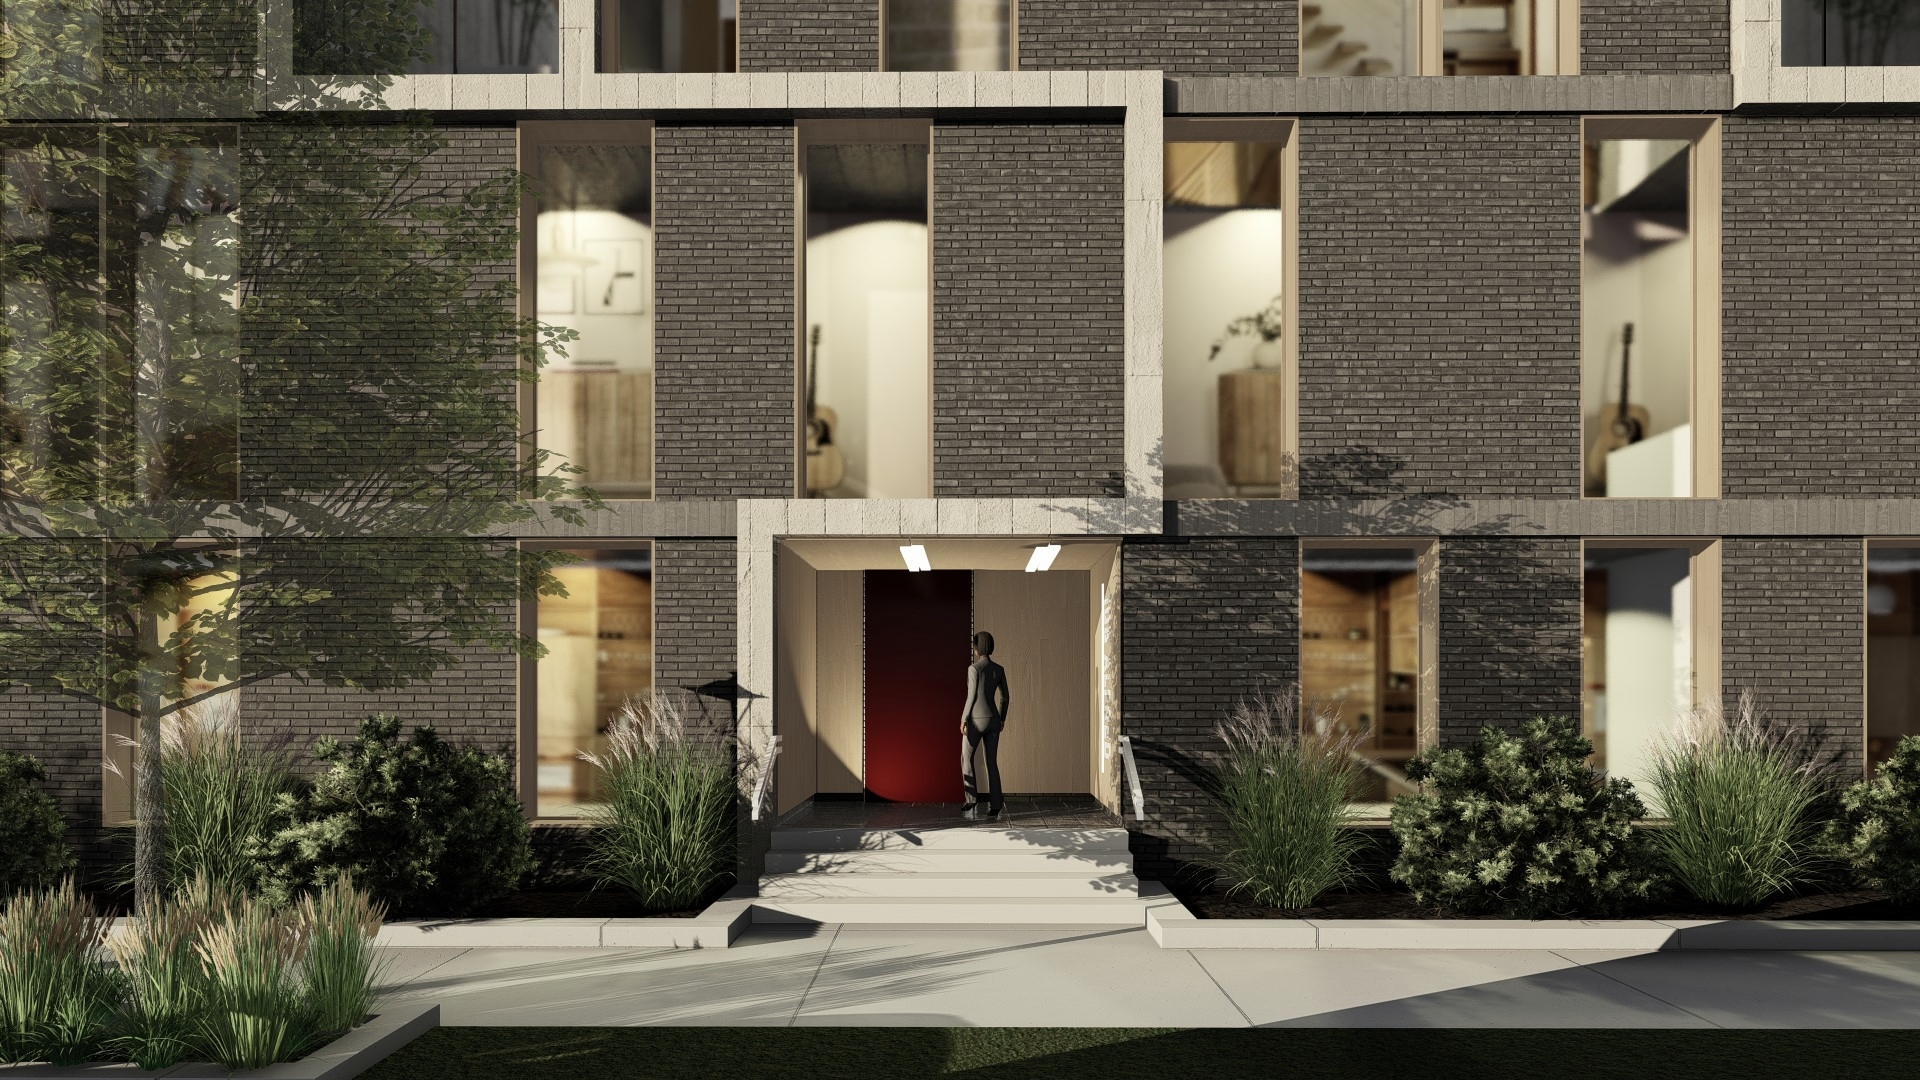 105 ALFRED ELEVATION ENTRY  - OOMBRA ARCHITECTS ©